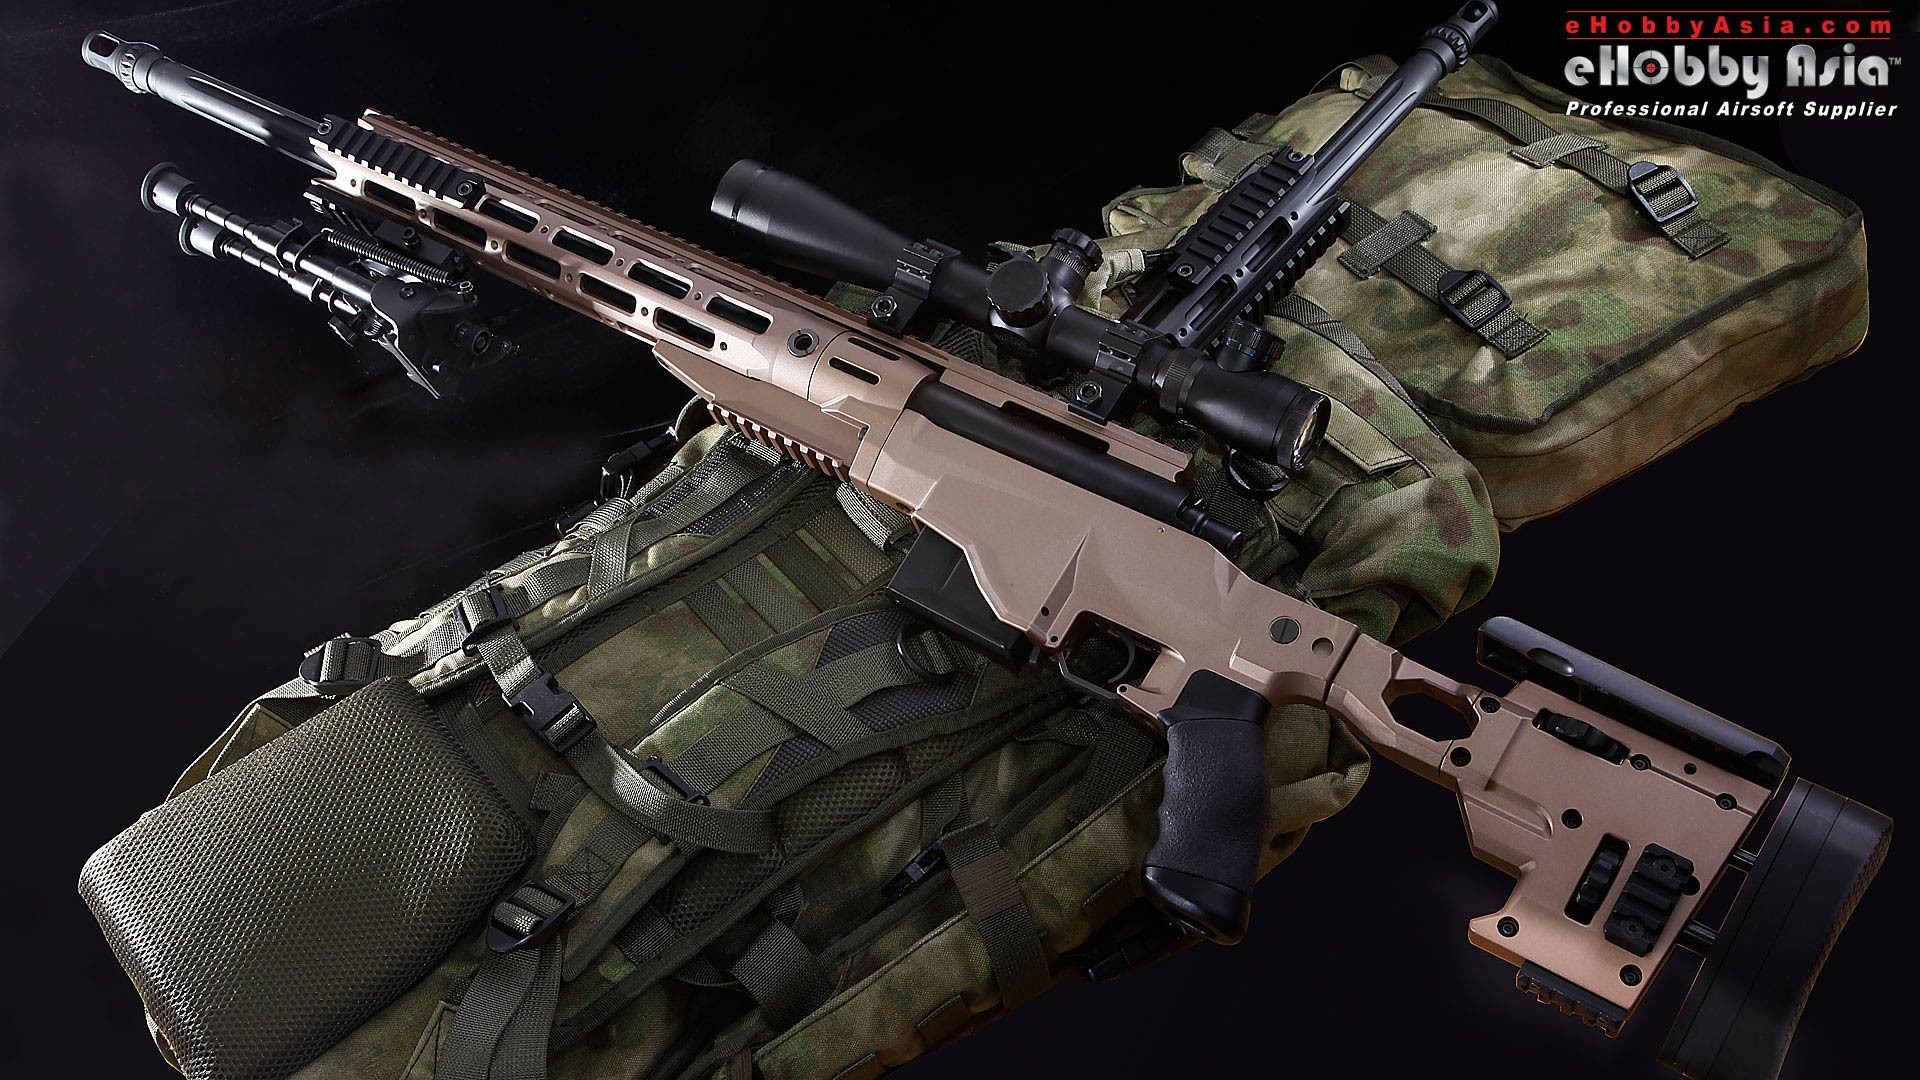 weapons sniper rifles airsoft Ares Wallpapers 1920x1080